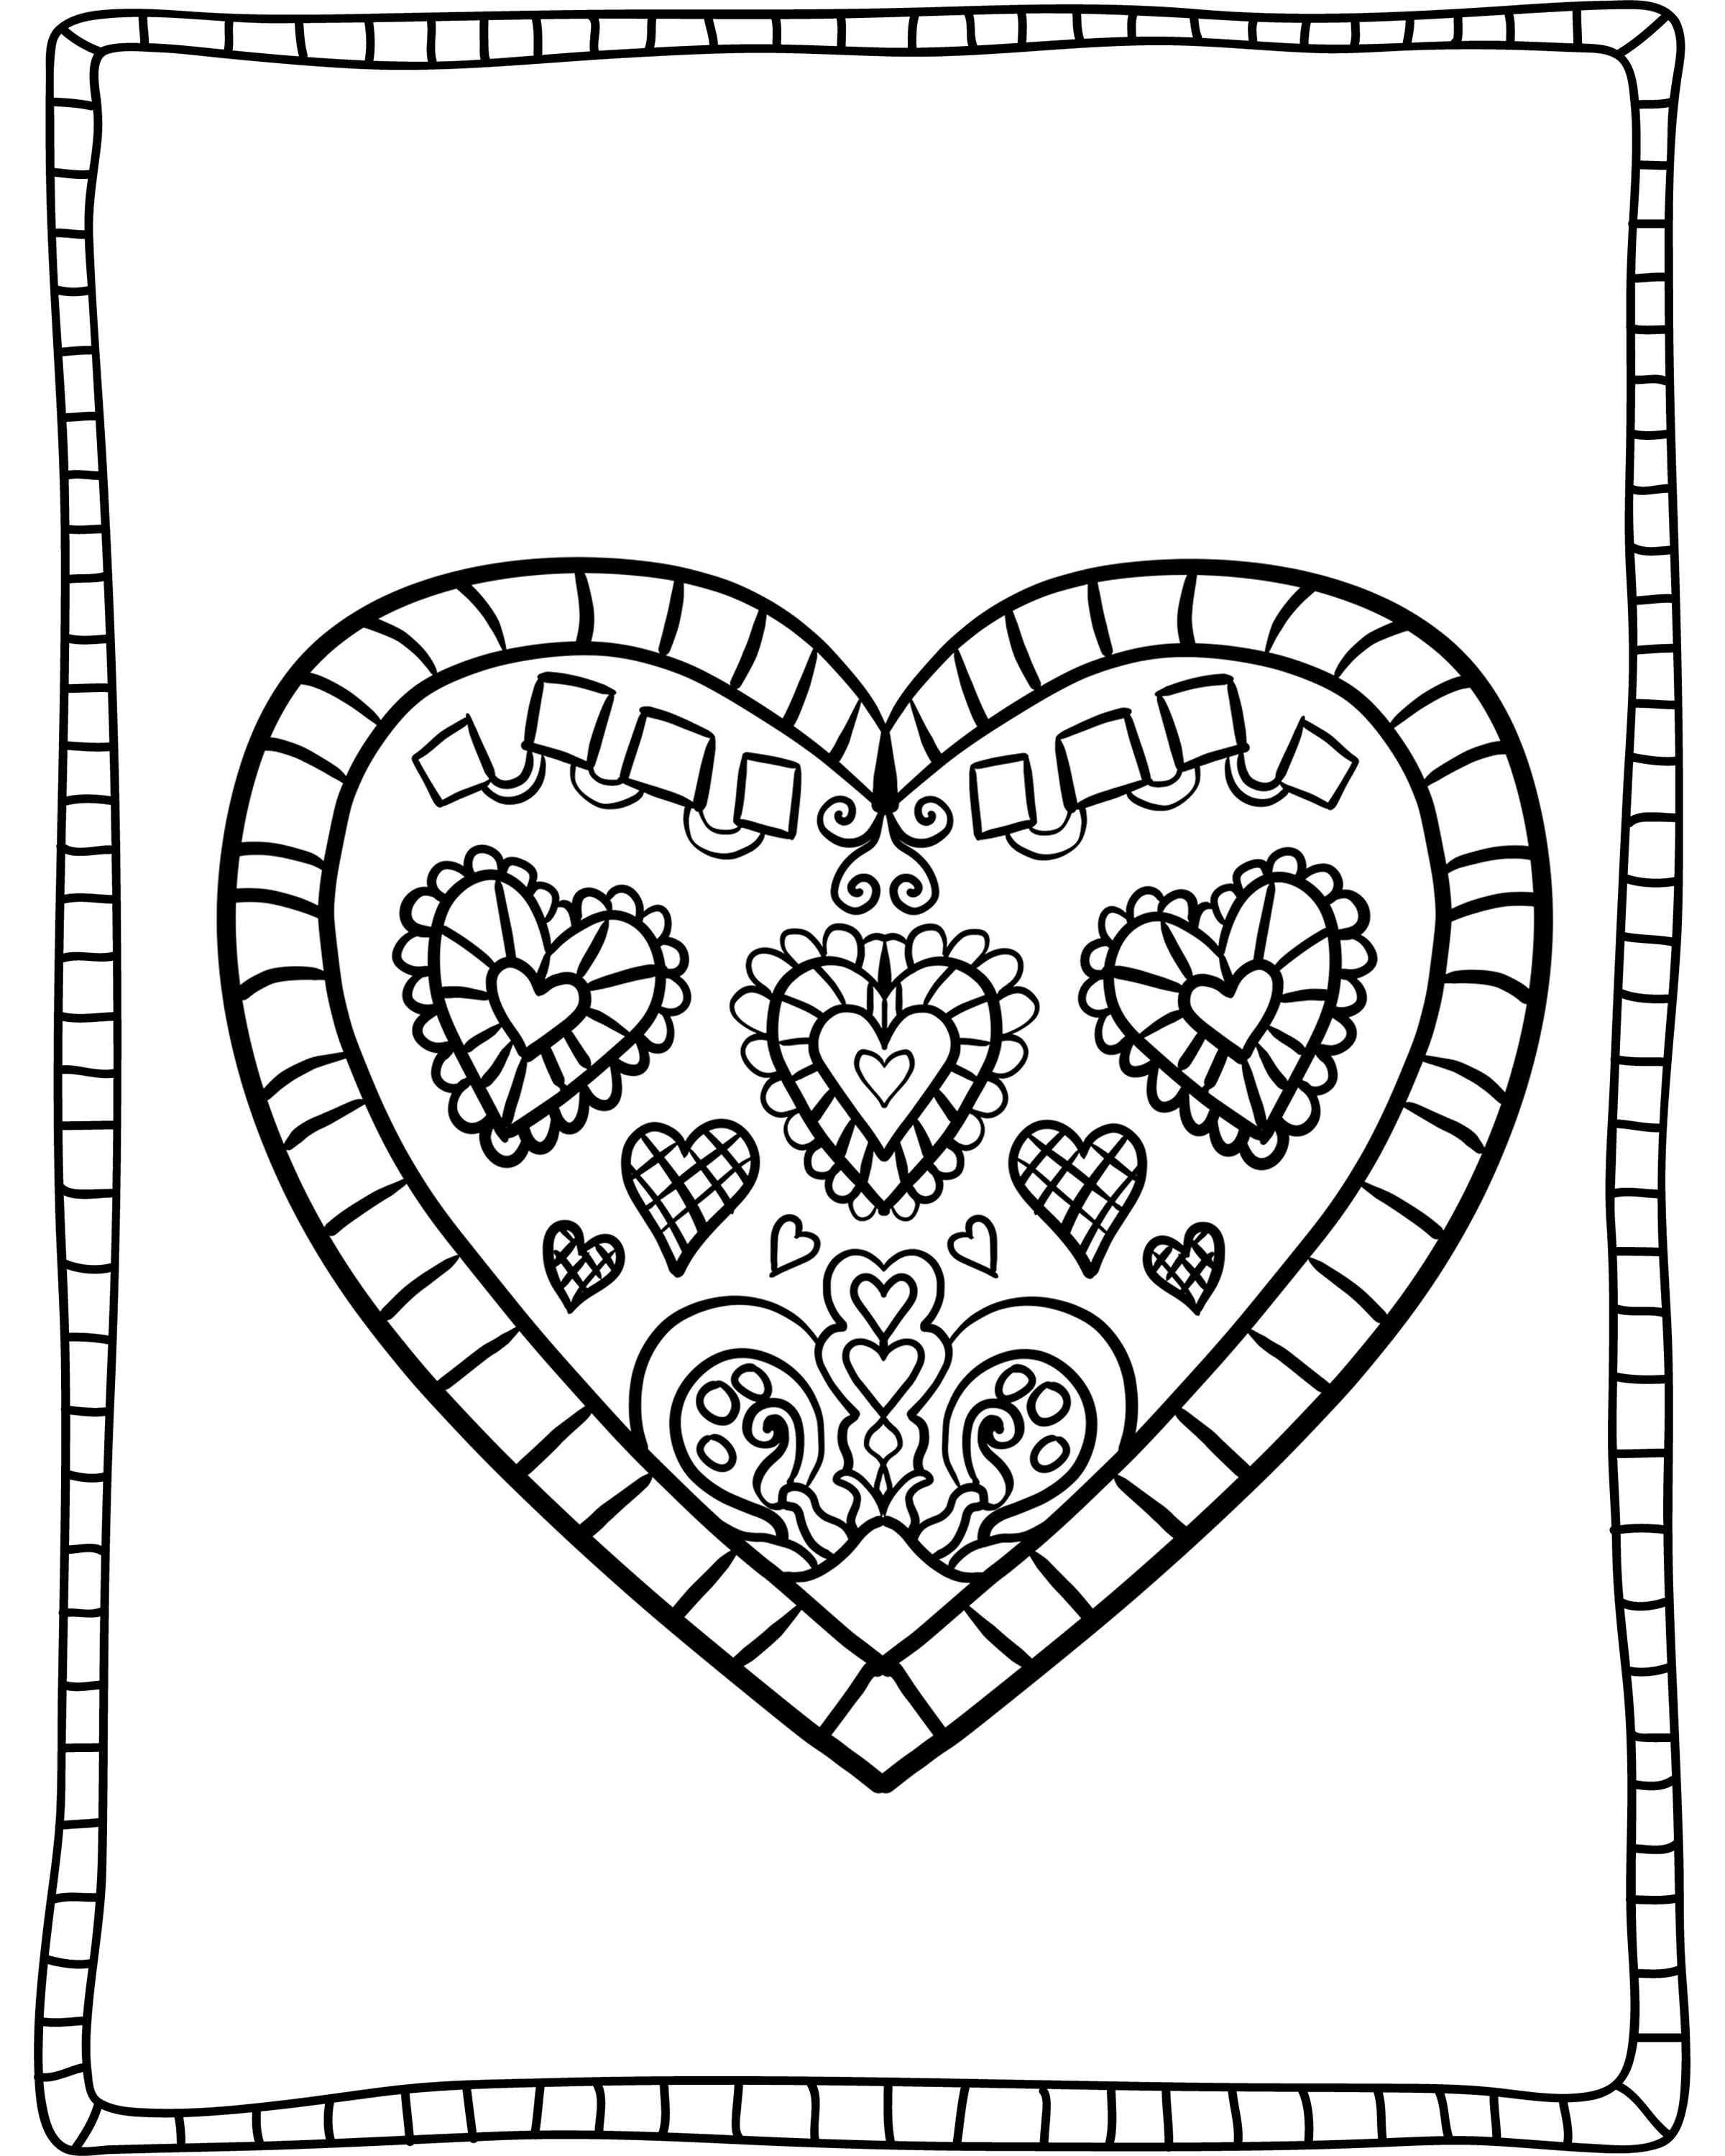 Heart Valentines Day Coloring Page For Adults